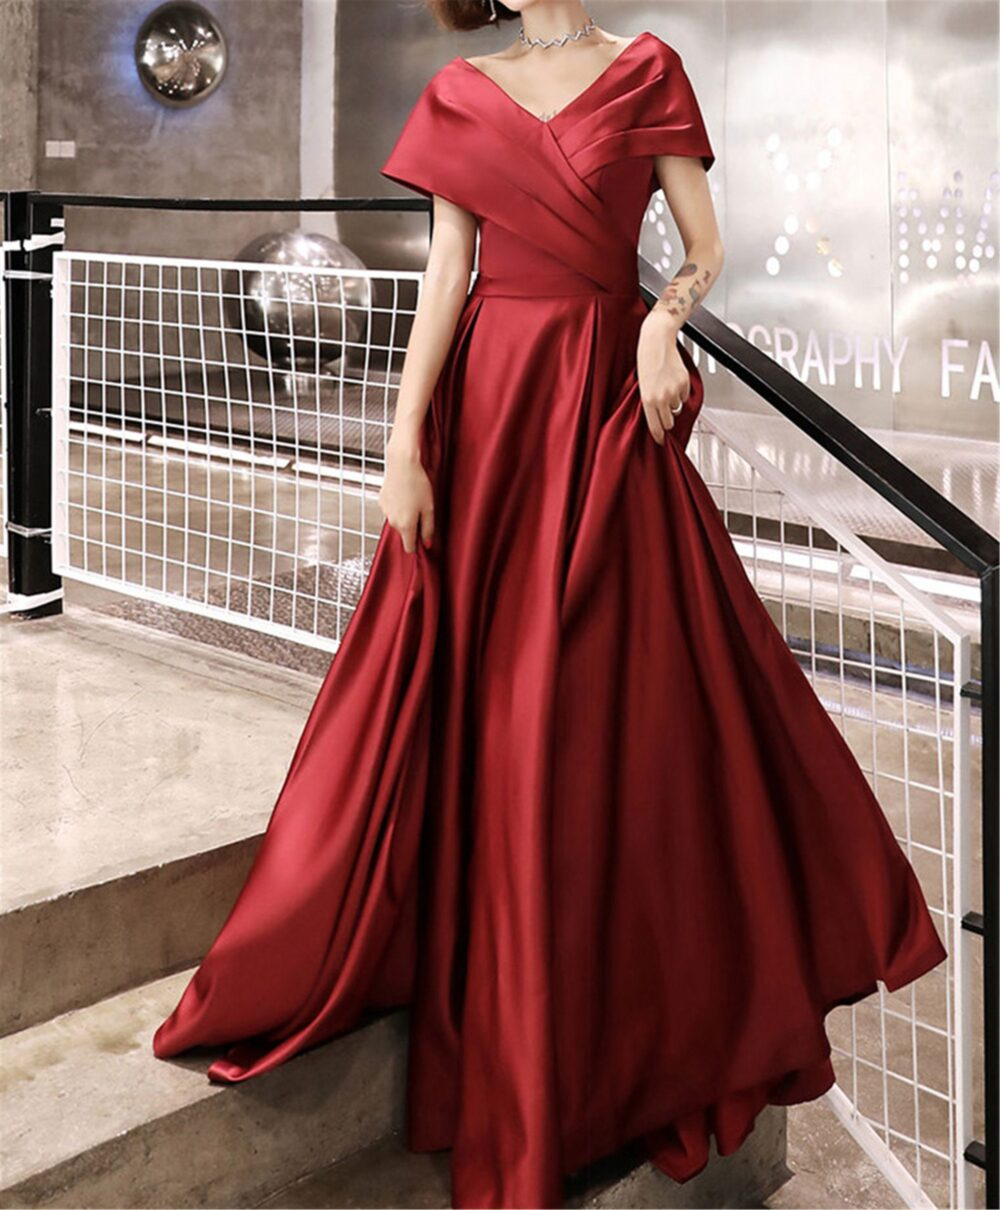 Burgundy Red Prom Dress Satin Bridesmaid V-Neck Formal Event A-Line Quinceanera Lace Up Back Bridal Floor Length